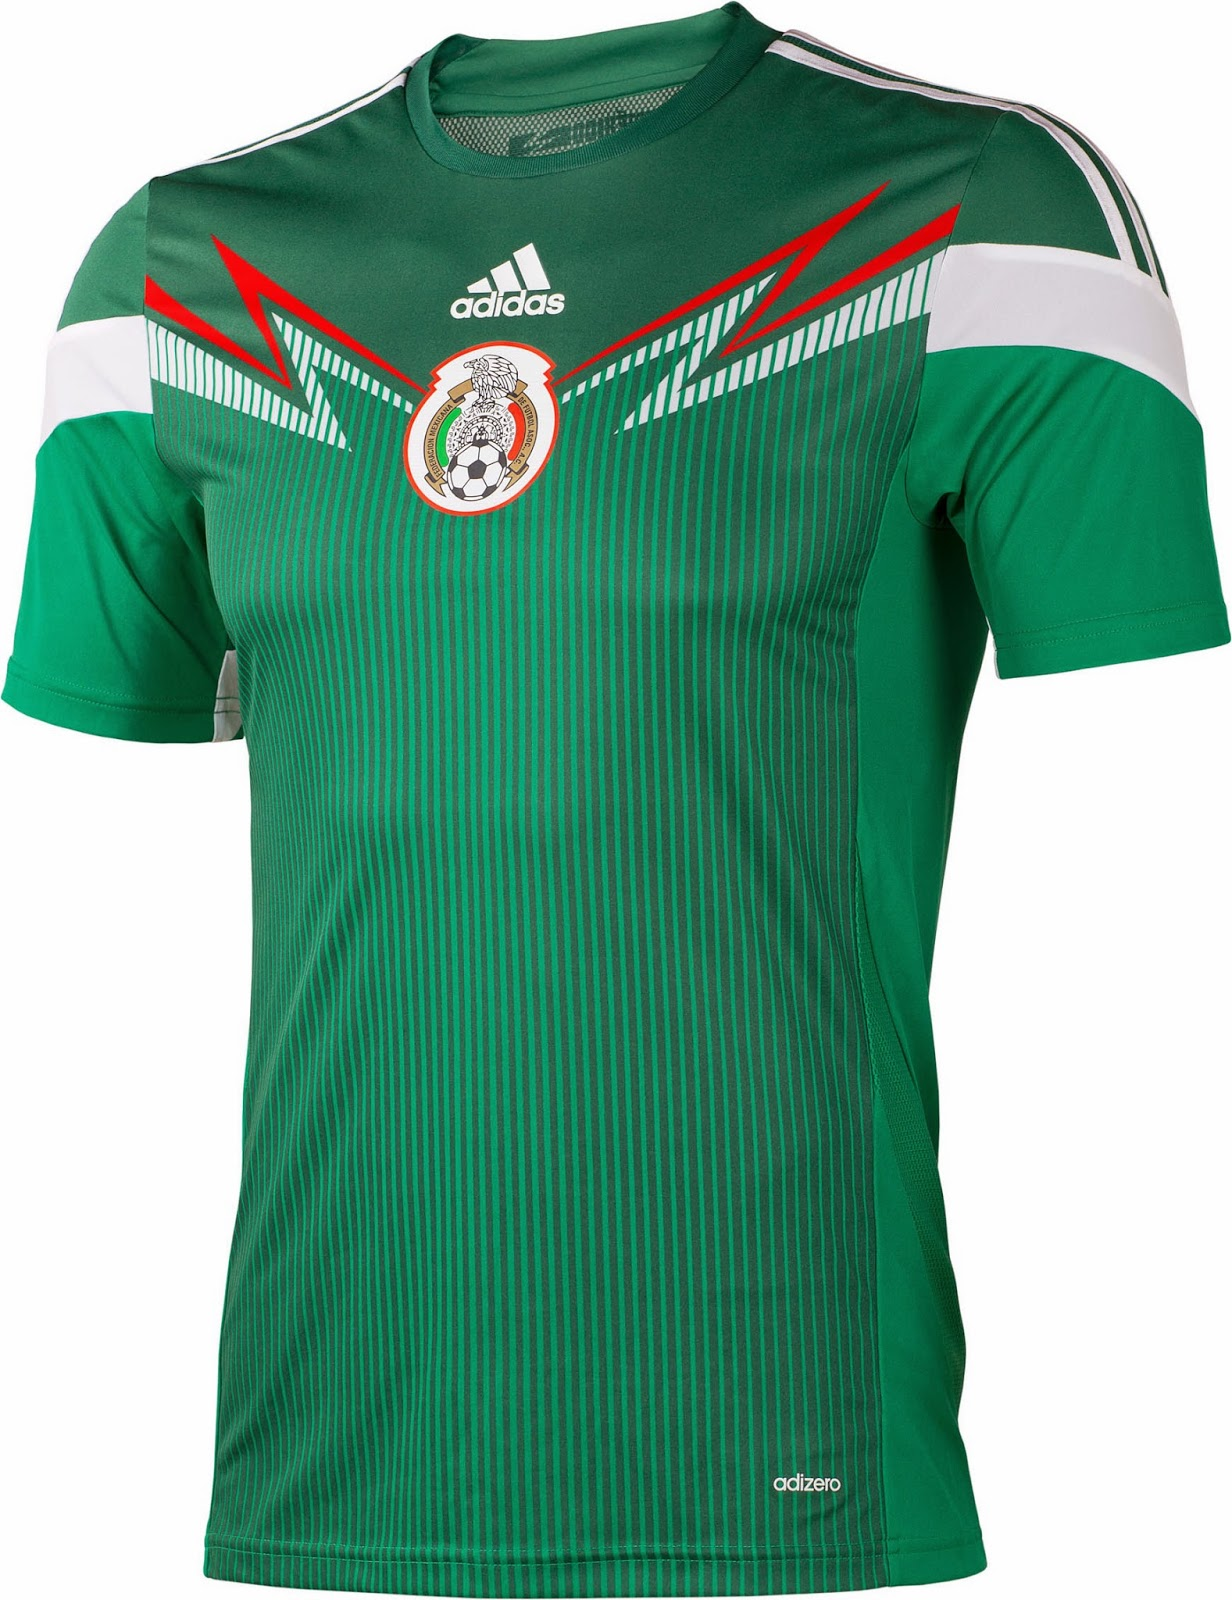 Mexico 2014 World Cup Kits Released Footy Headlines